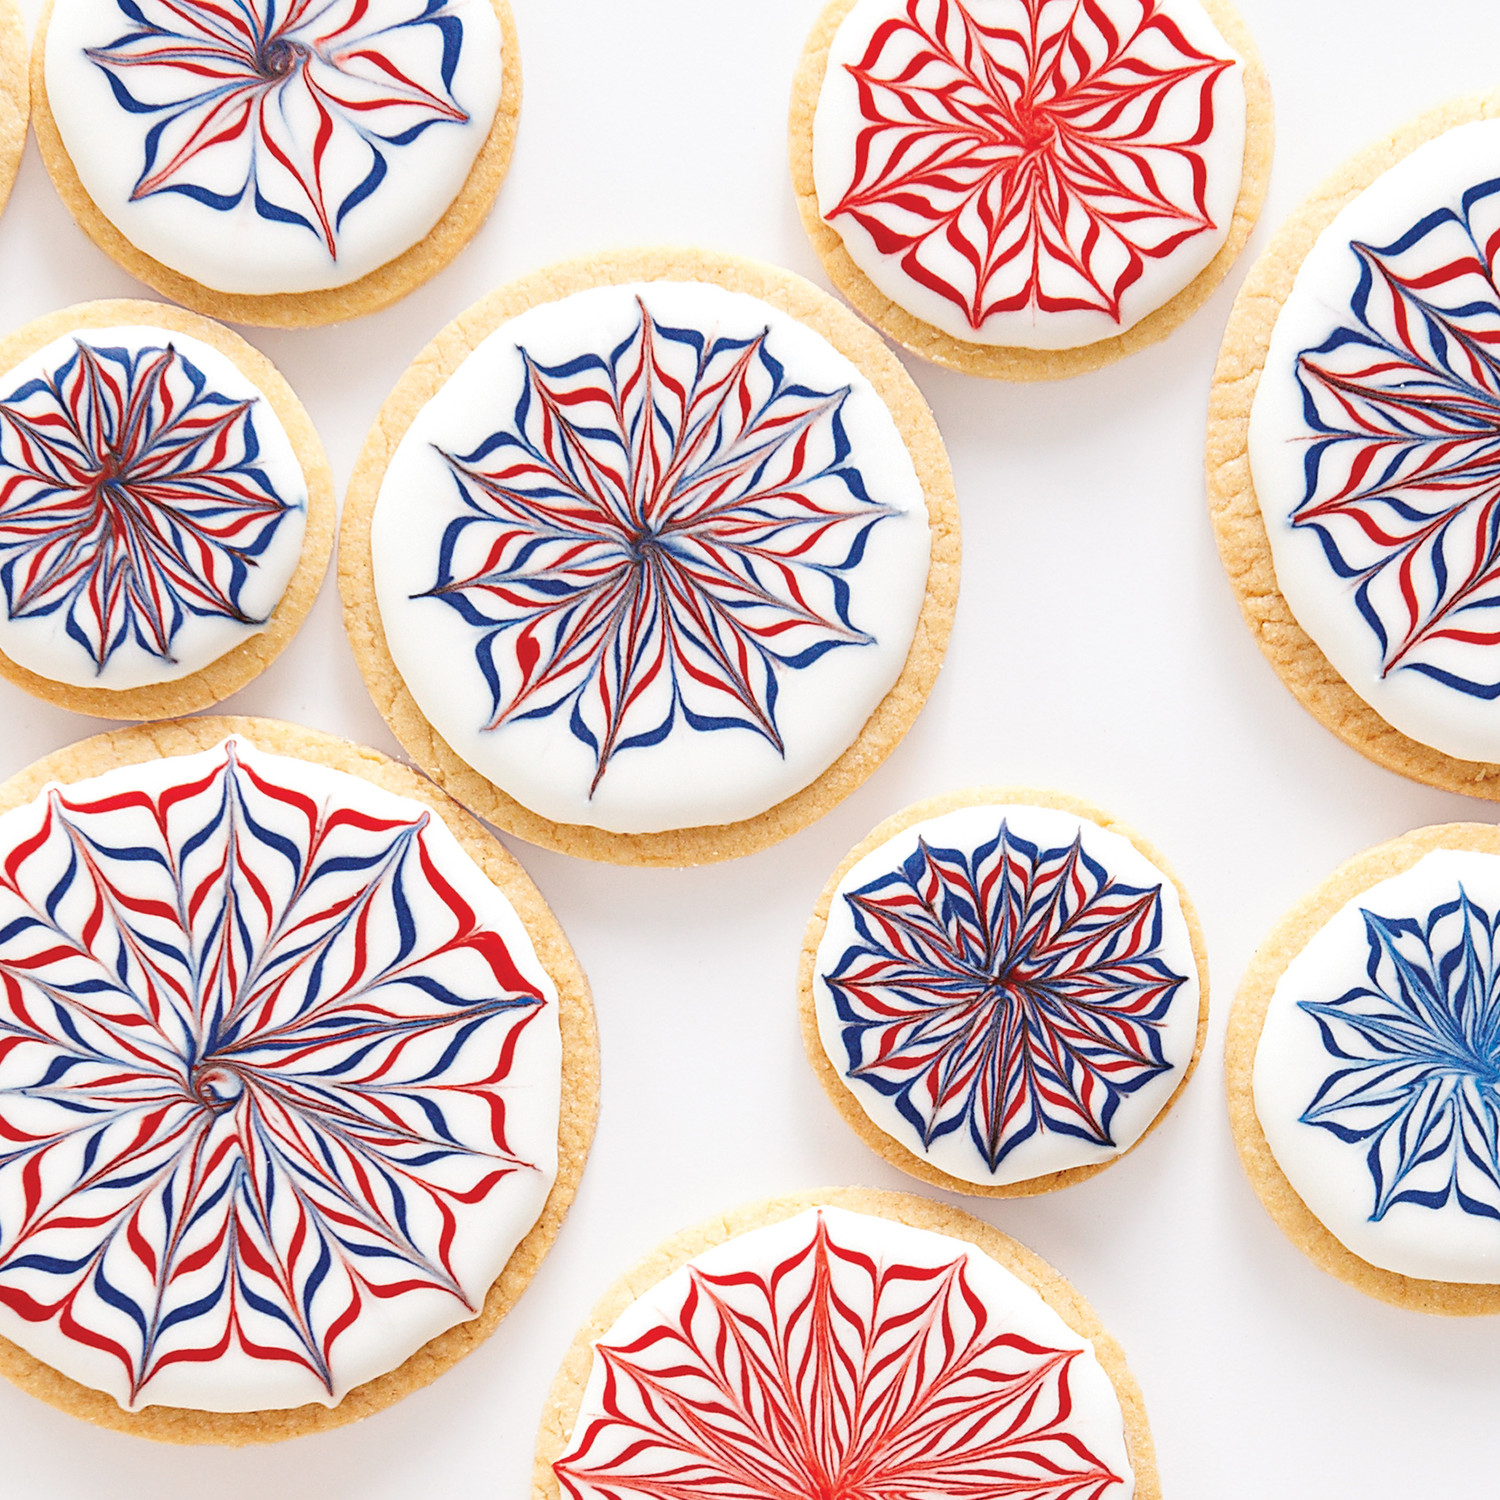 Red, White, and Blue Royal Icing